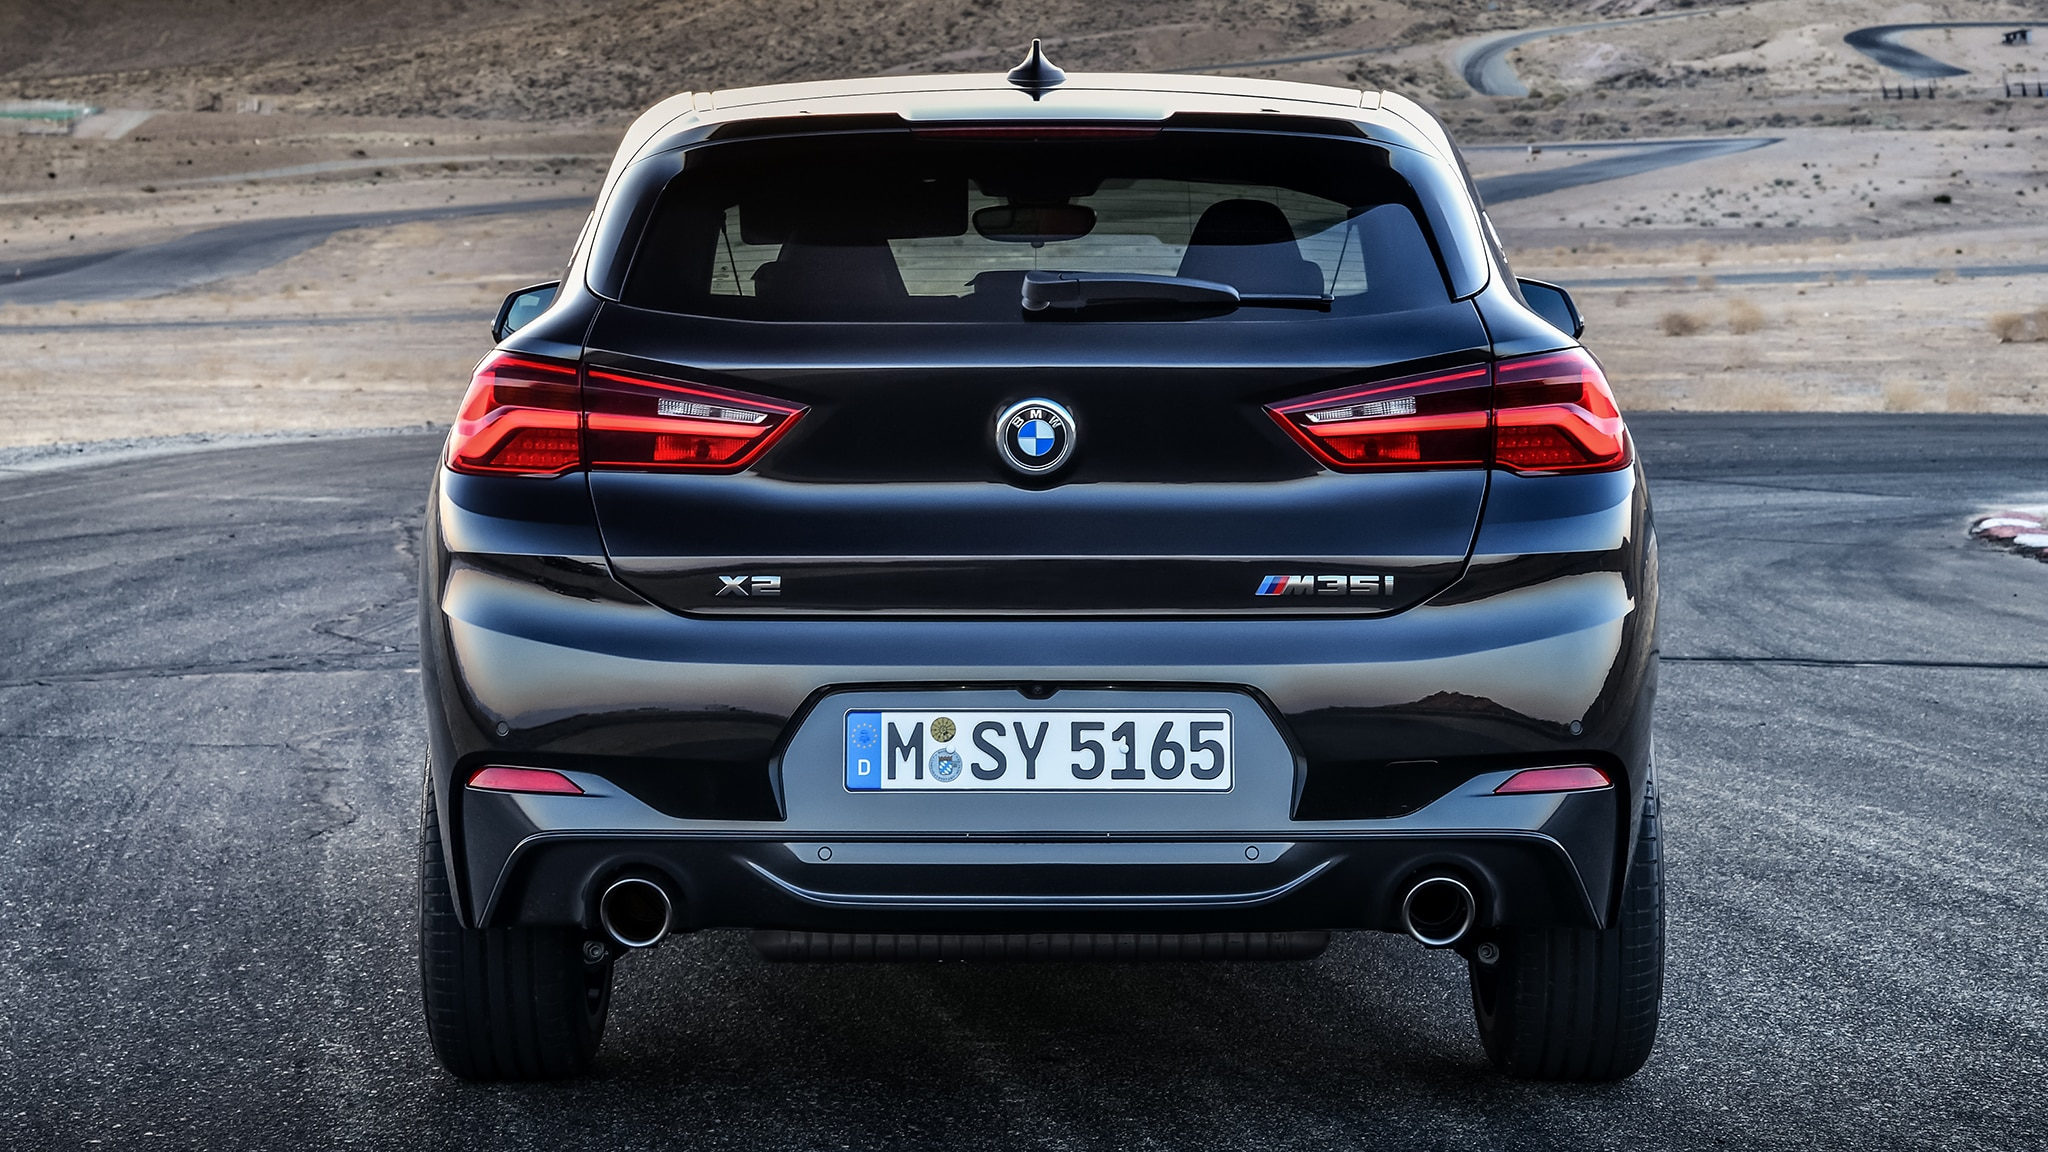 2019 Bmw X2 M35i Revealed With 302 Hp 2 0 Liter Turbo Automobile